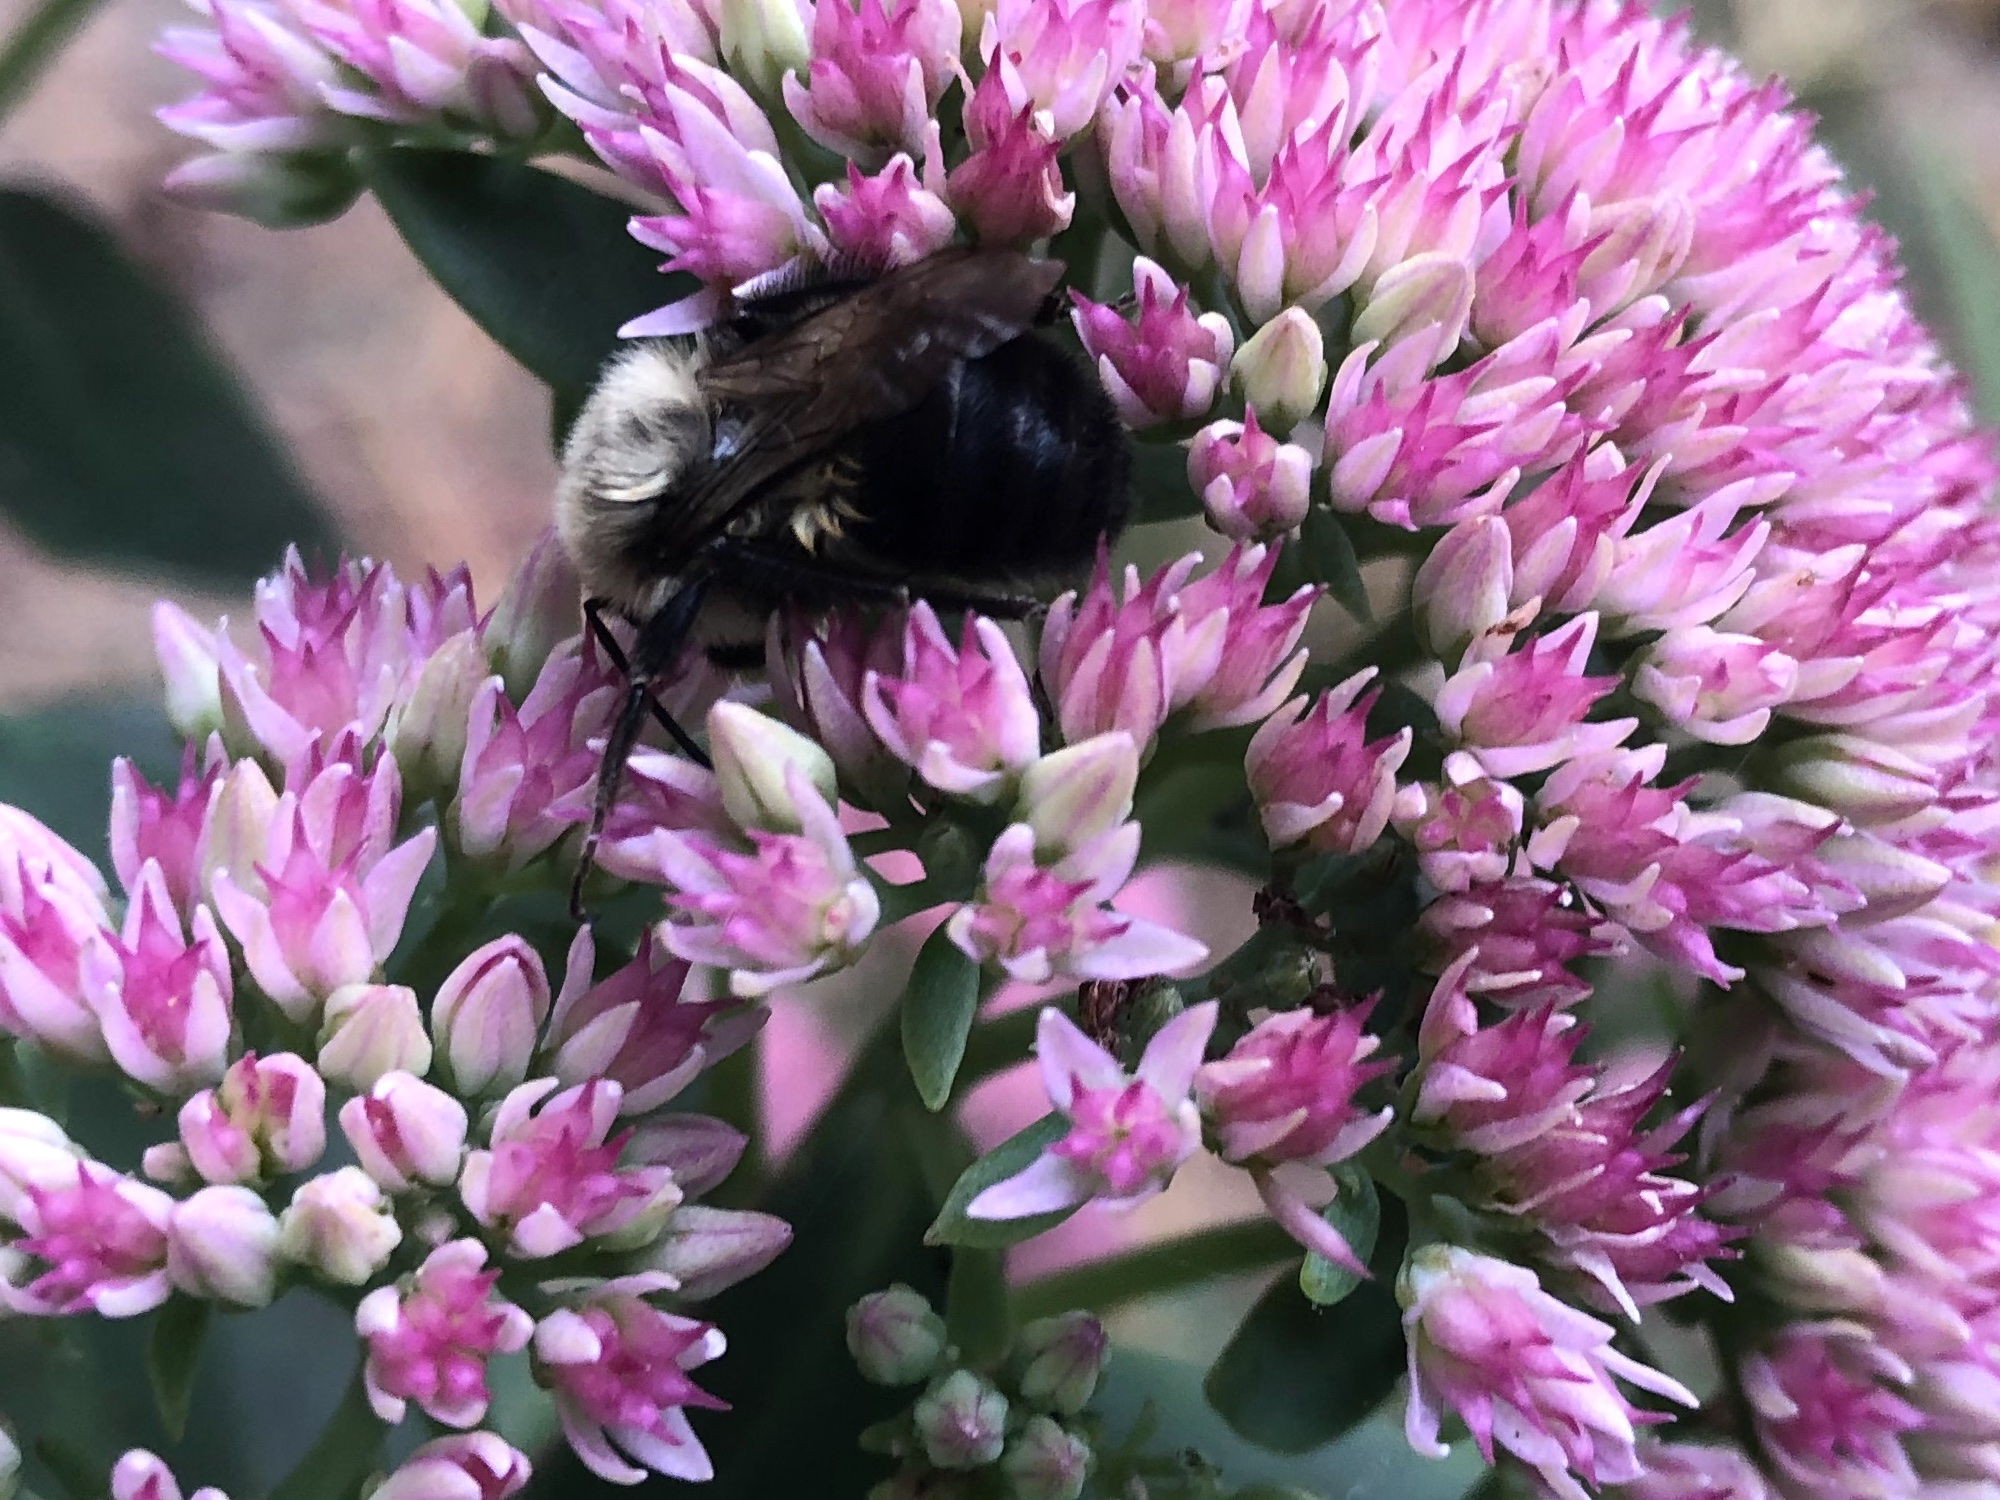 Bumblebee on Sedum on September 27, 2020.